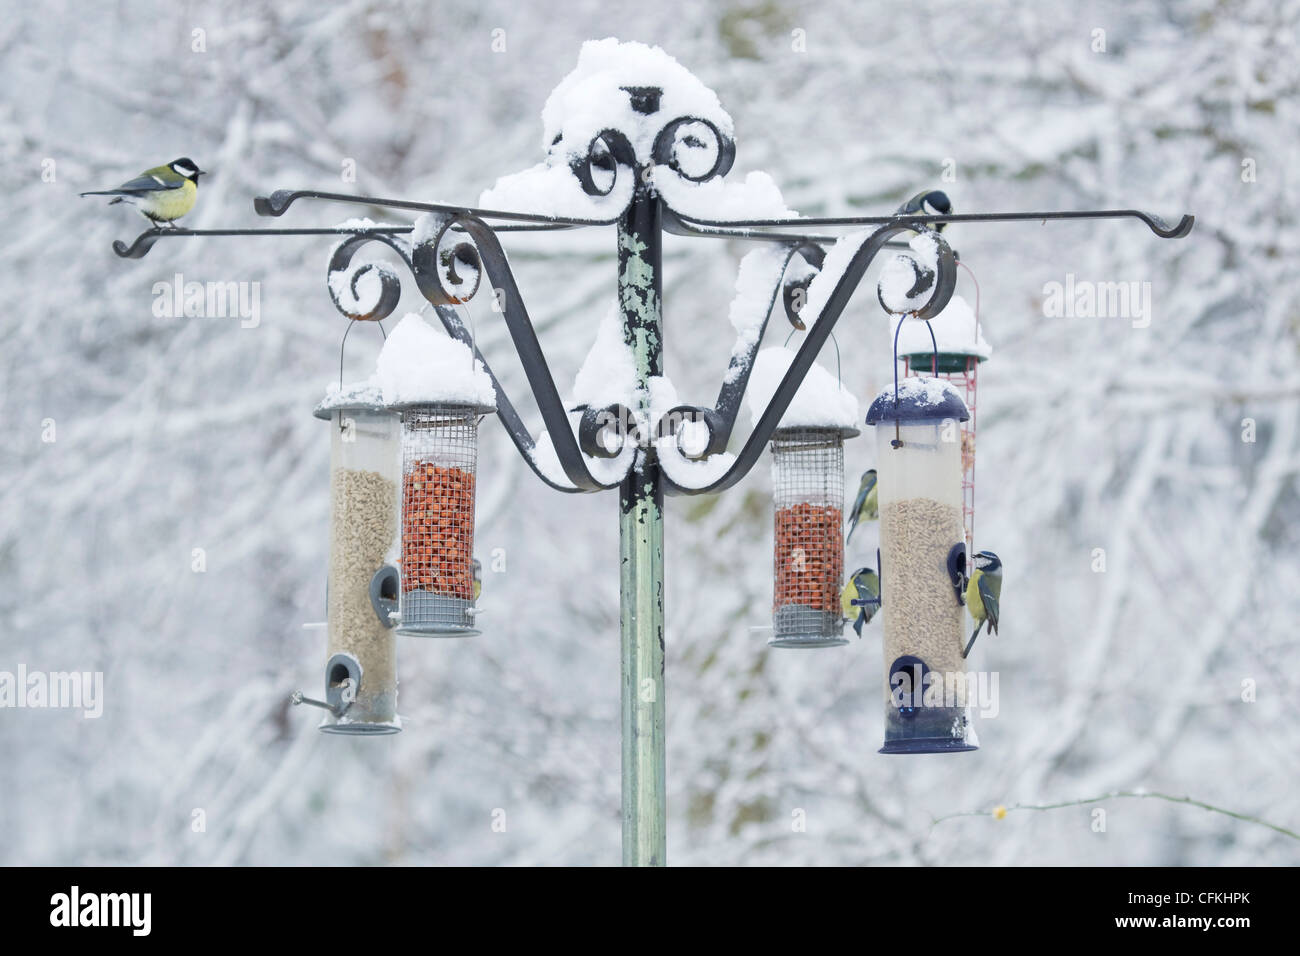 Birds on feeder in winter woodland with snow Brentwood Essex, UK BI022004 - Stock Image